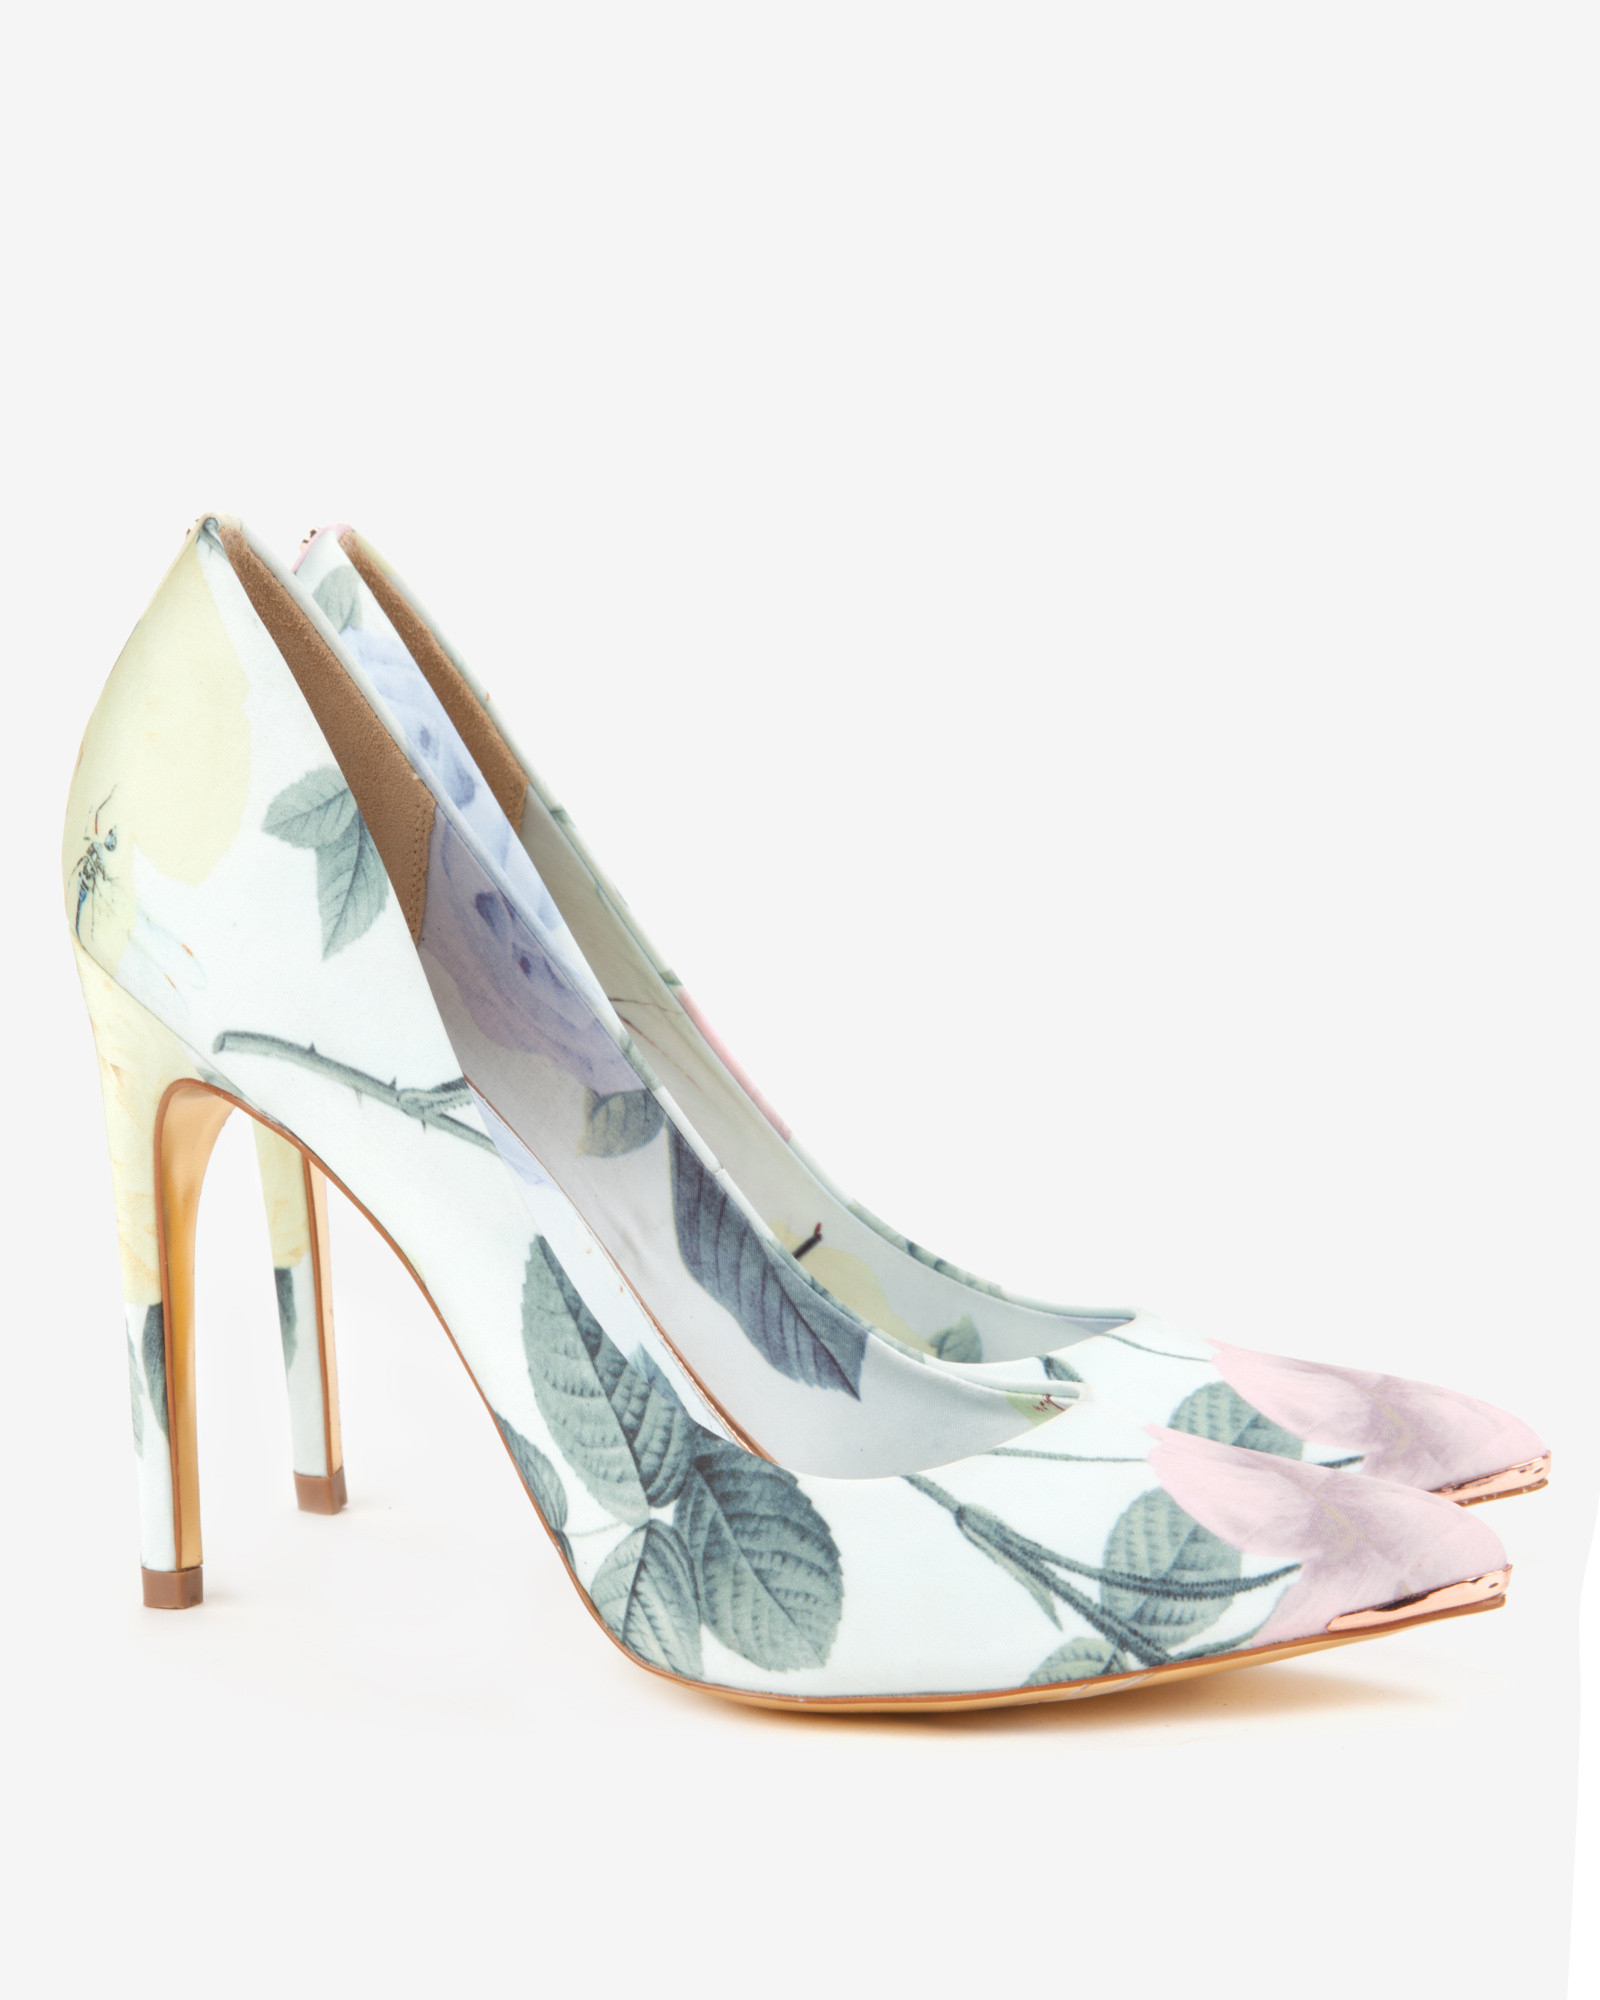 cbeb15516 Lyst - Ted Baker Printed Court Shoes in Green